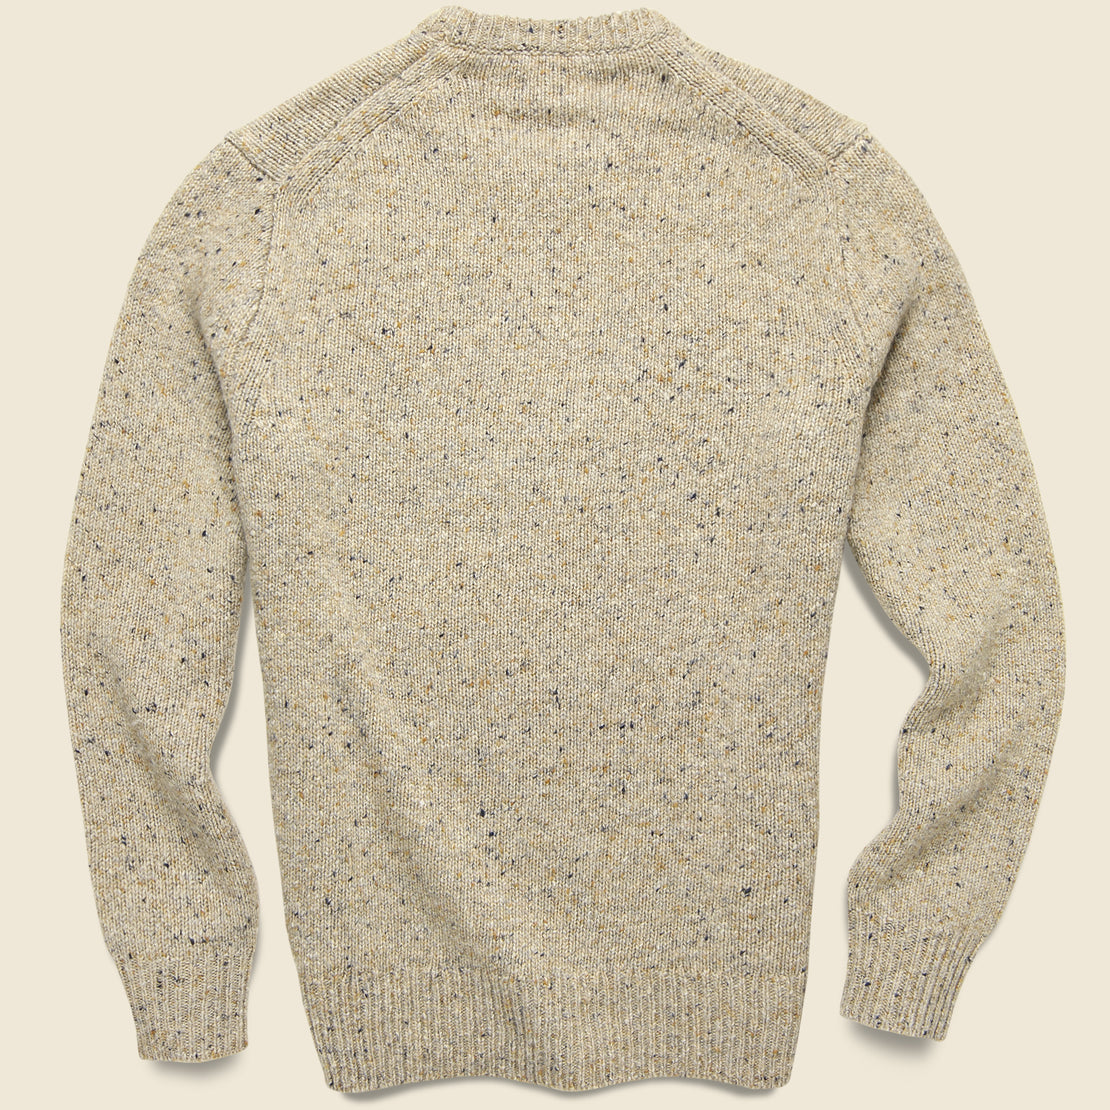 Donegal Wool Sweater - Oatmeal